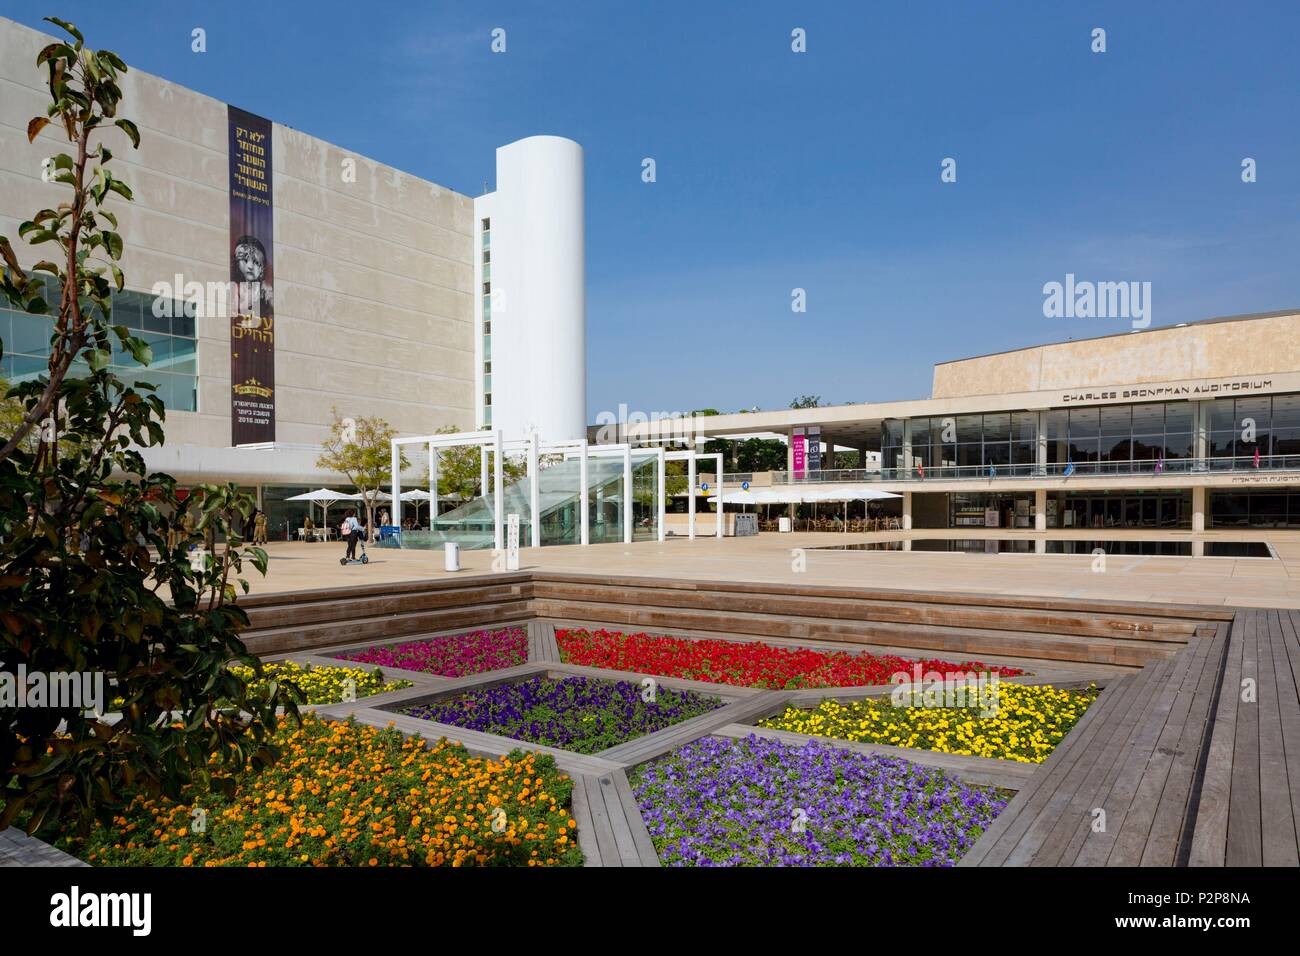 Israel, Tel Aviv-Jaffa, Tel-Aviv, the city center, Habima Square and the Habima Theater, the national theater of Israel, an expression of the spirit of the Jewish people with a particular focus on Hebrew culture and language, right, the Charles Bronfman Auditorium - Stock Image